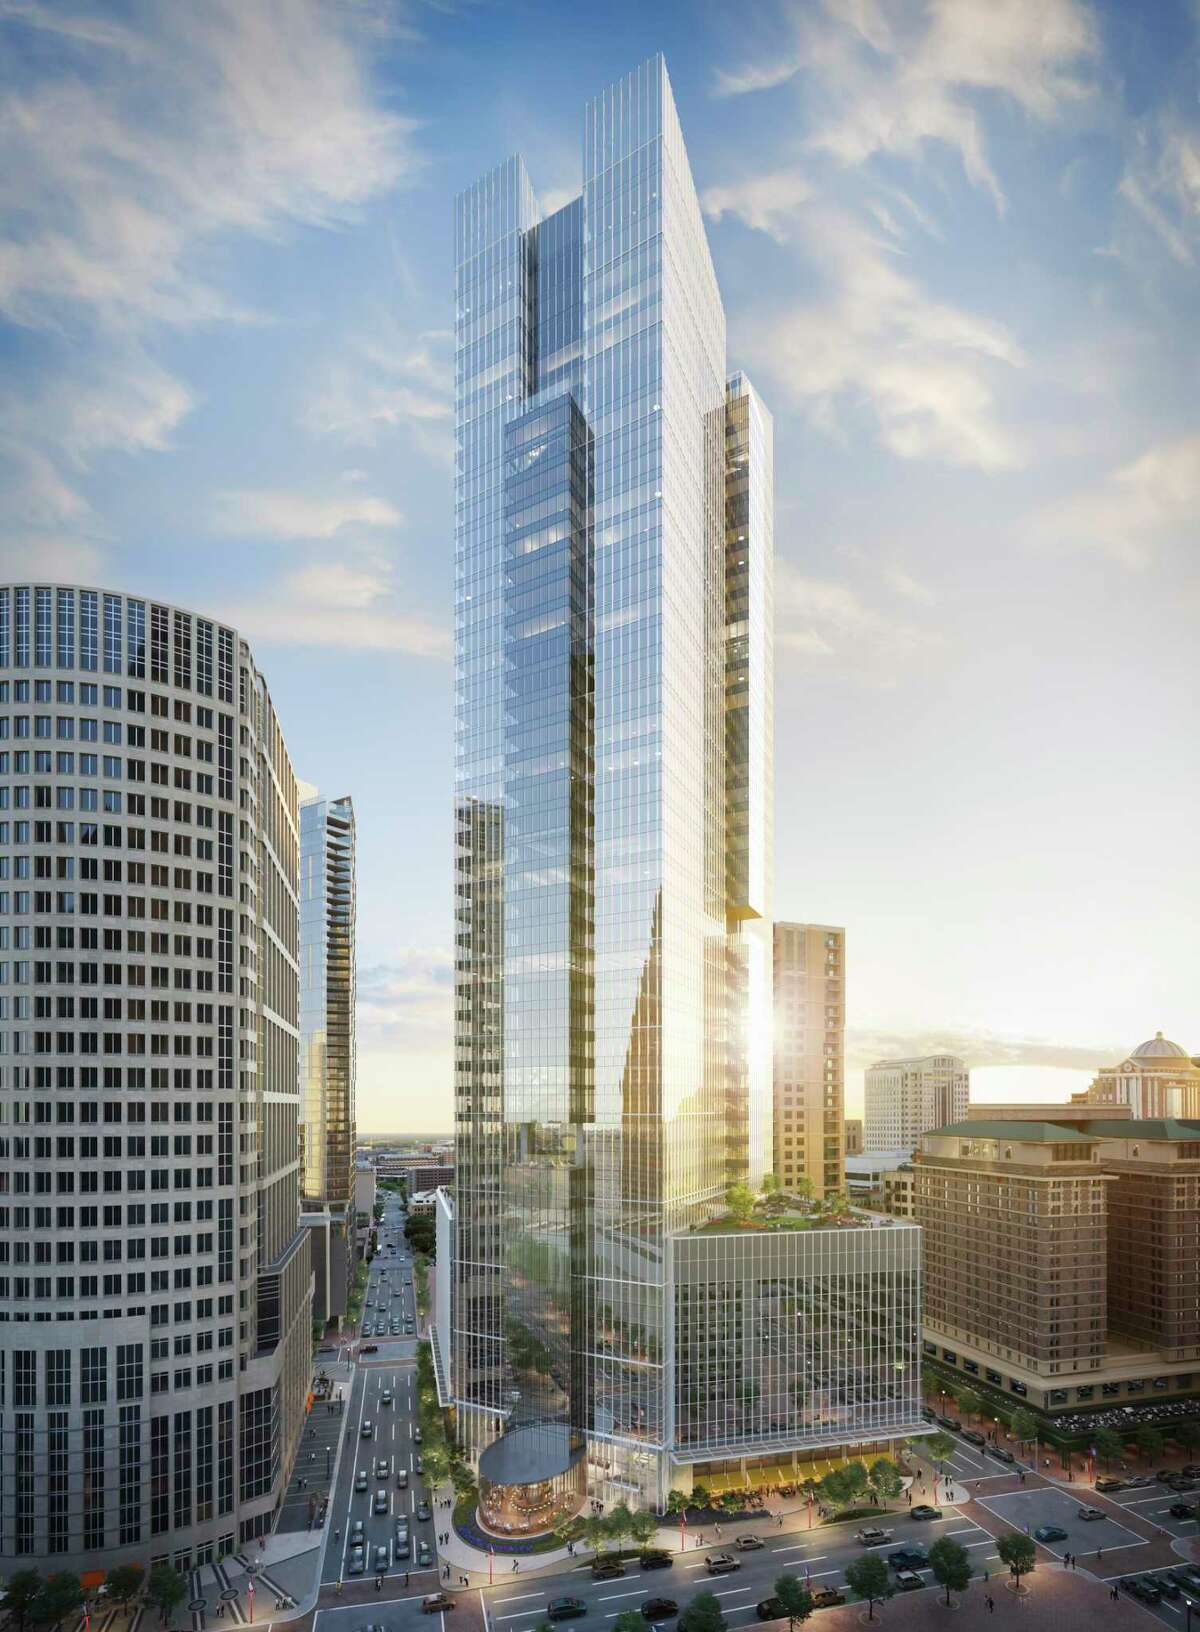 Vinson & Elkins will relocate to Texas Tower, a development of Hines at 845 Texas Ave. in downtown Houston, in 2022. The law firm has Savills to provide project management services for the new office space.